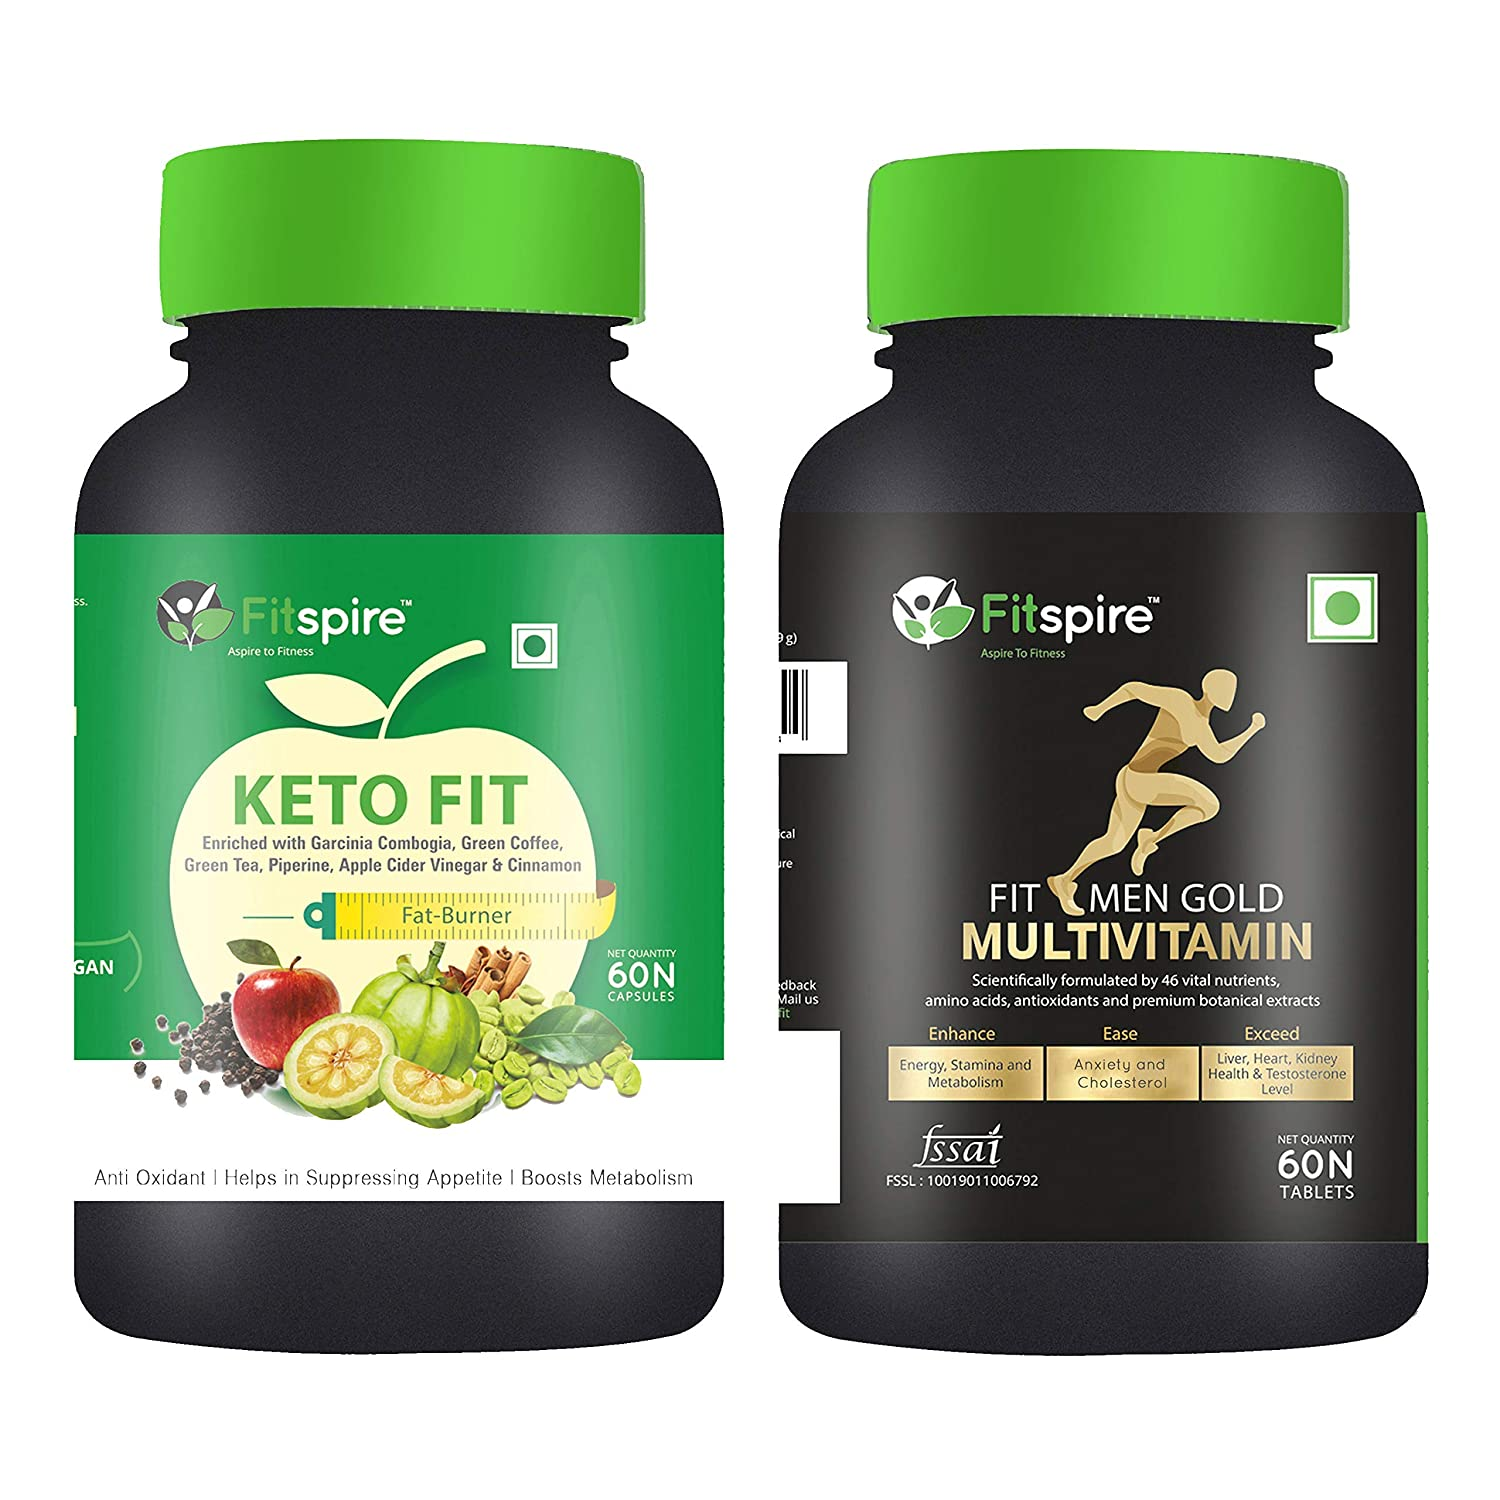 Fitspire Keto Fit Capsules with Fit Men Multivitamin Tablets Combo Pack